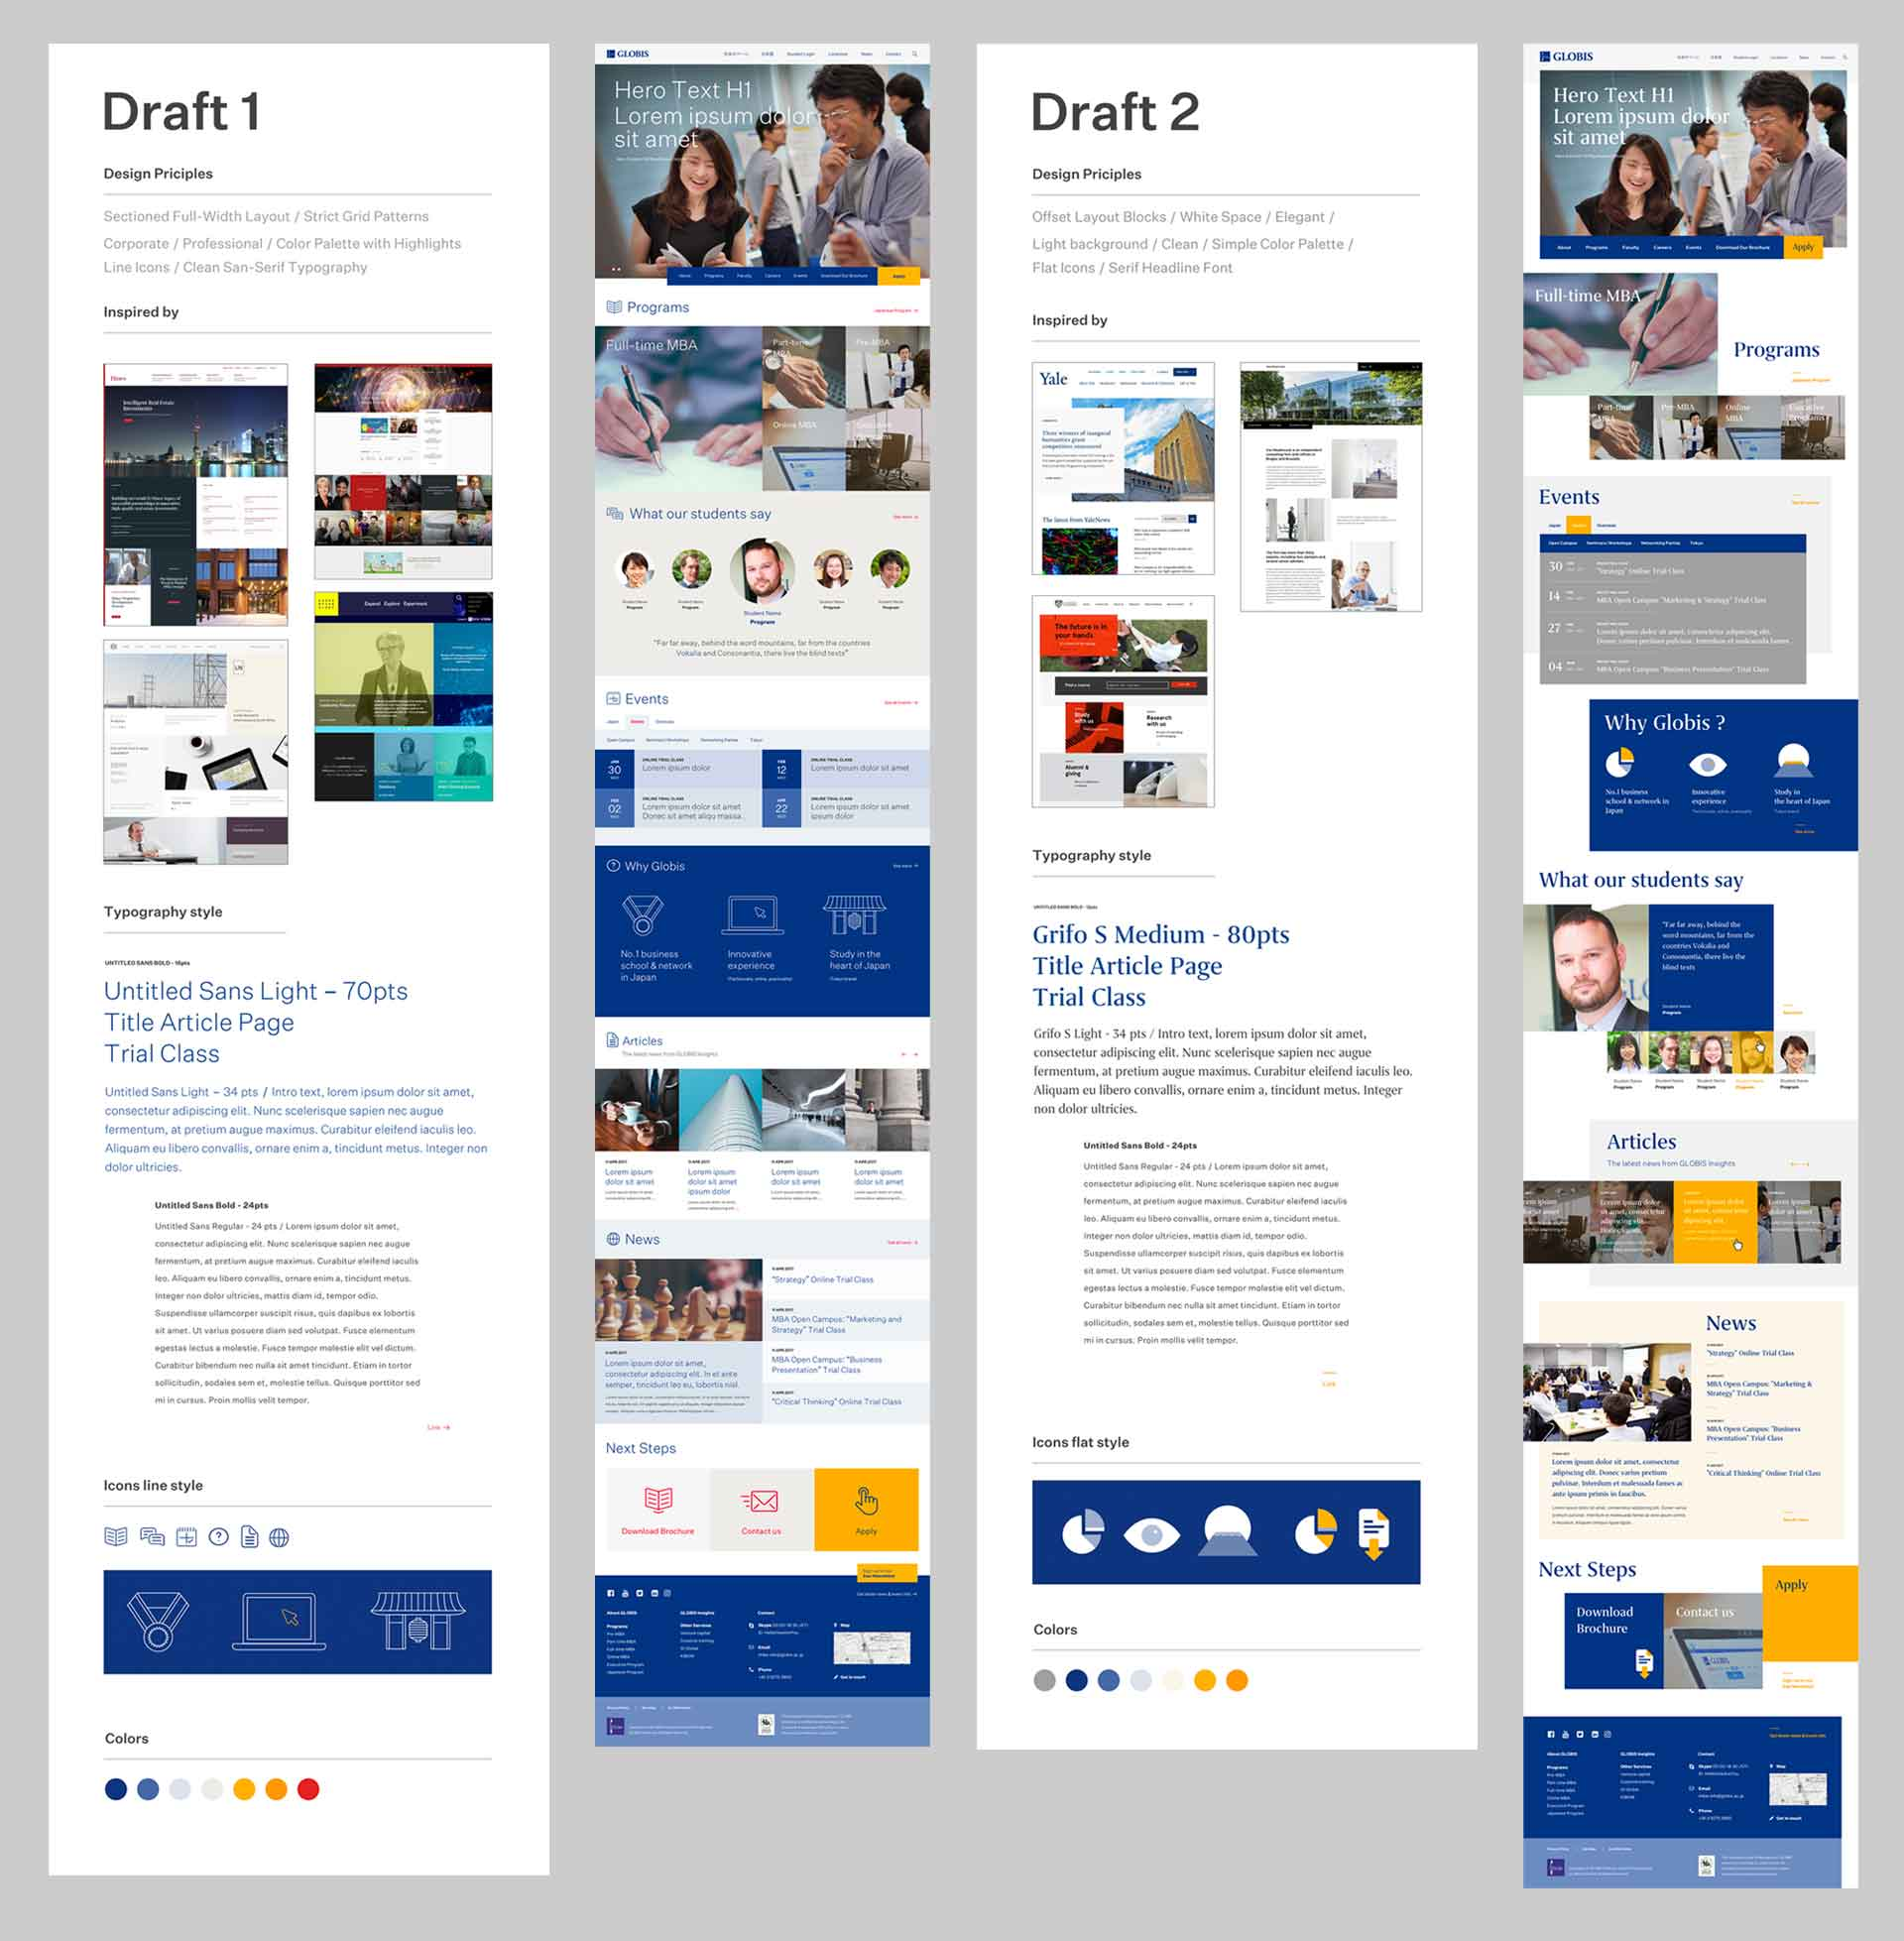 Globis University - Business School - Design Principles Moodboard and UI Mockup